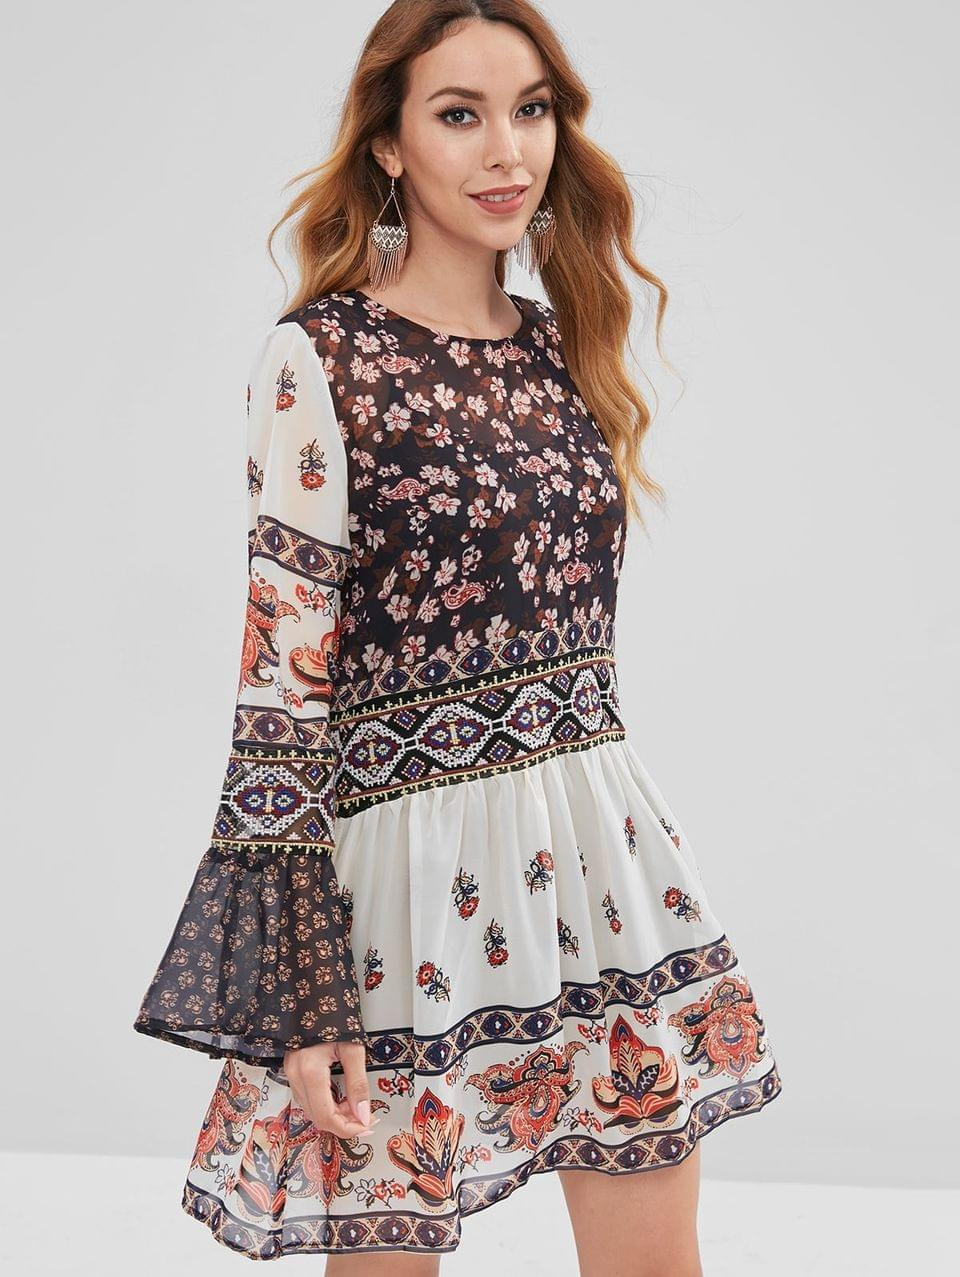 Women's Textured Floral Flare Sleeve Dress With Cami Top - Multi S